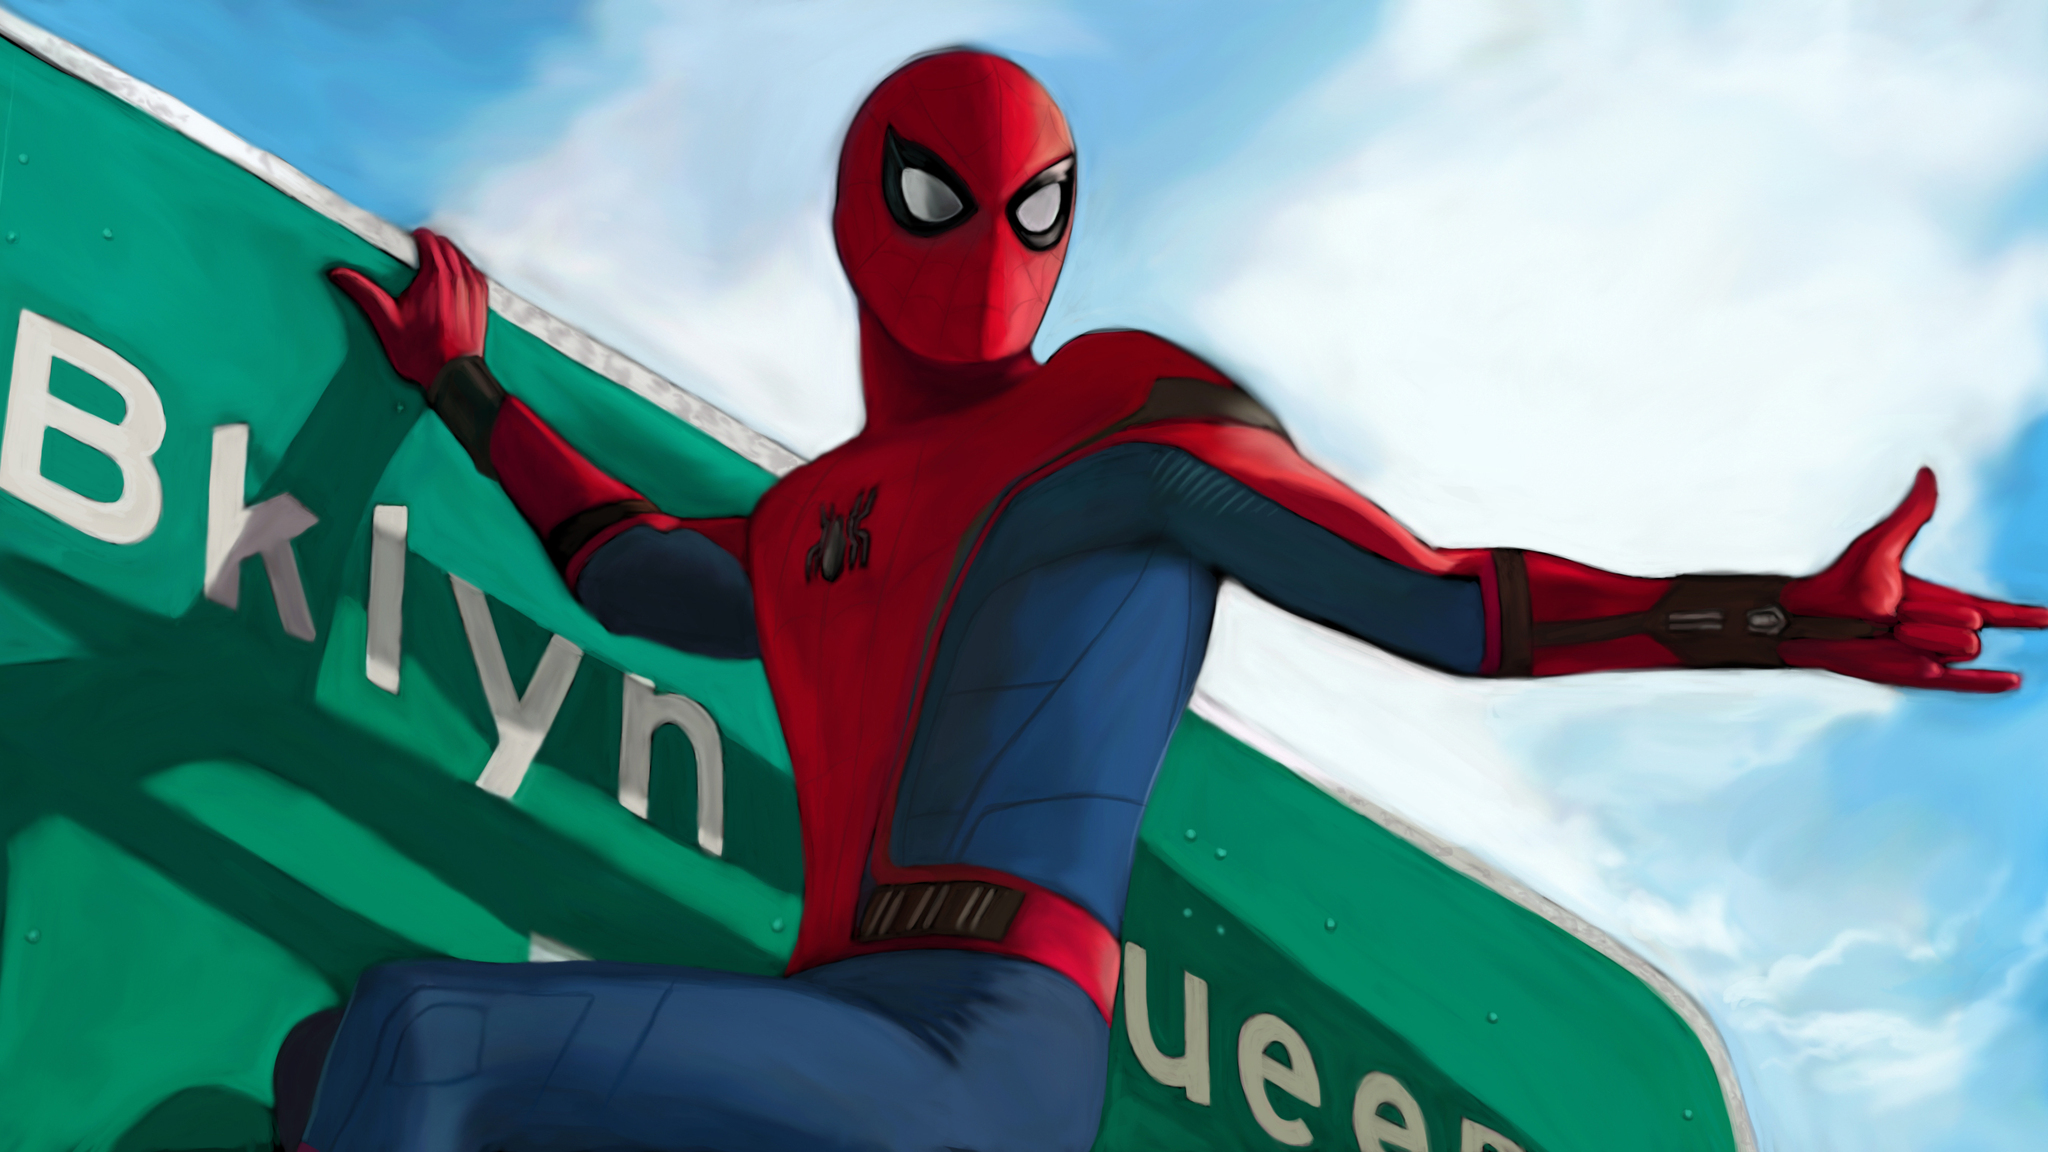 spider-man-homecoming-on-sign-board-artwork-58.jpg